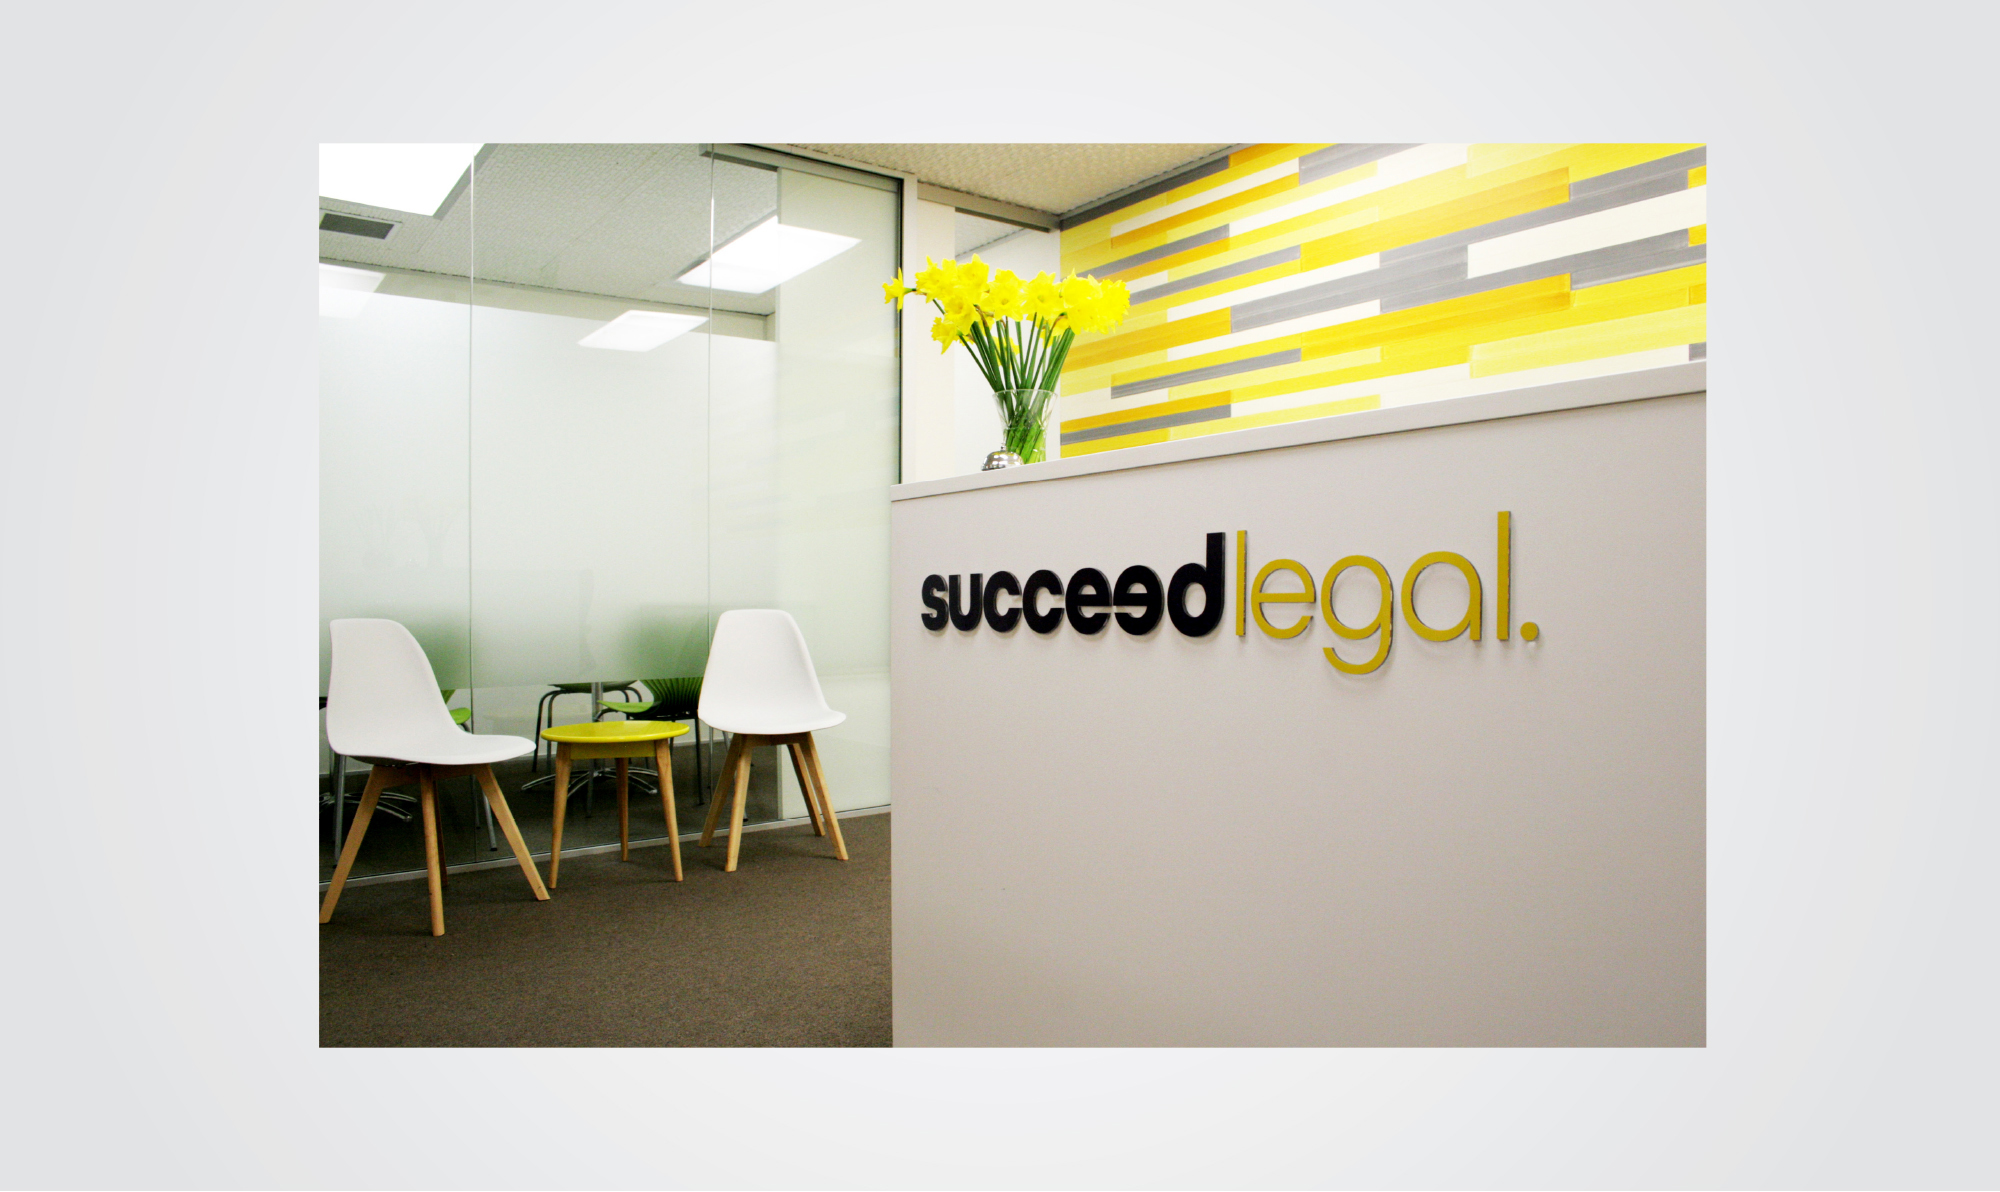 succeed-legal